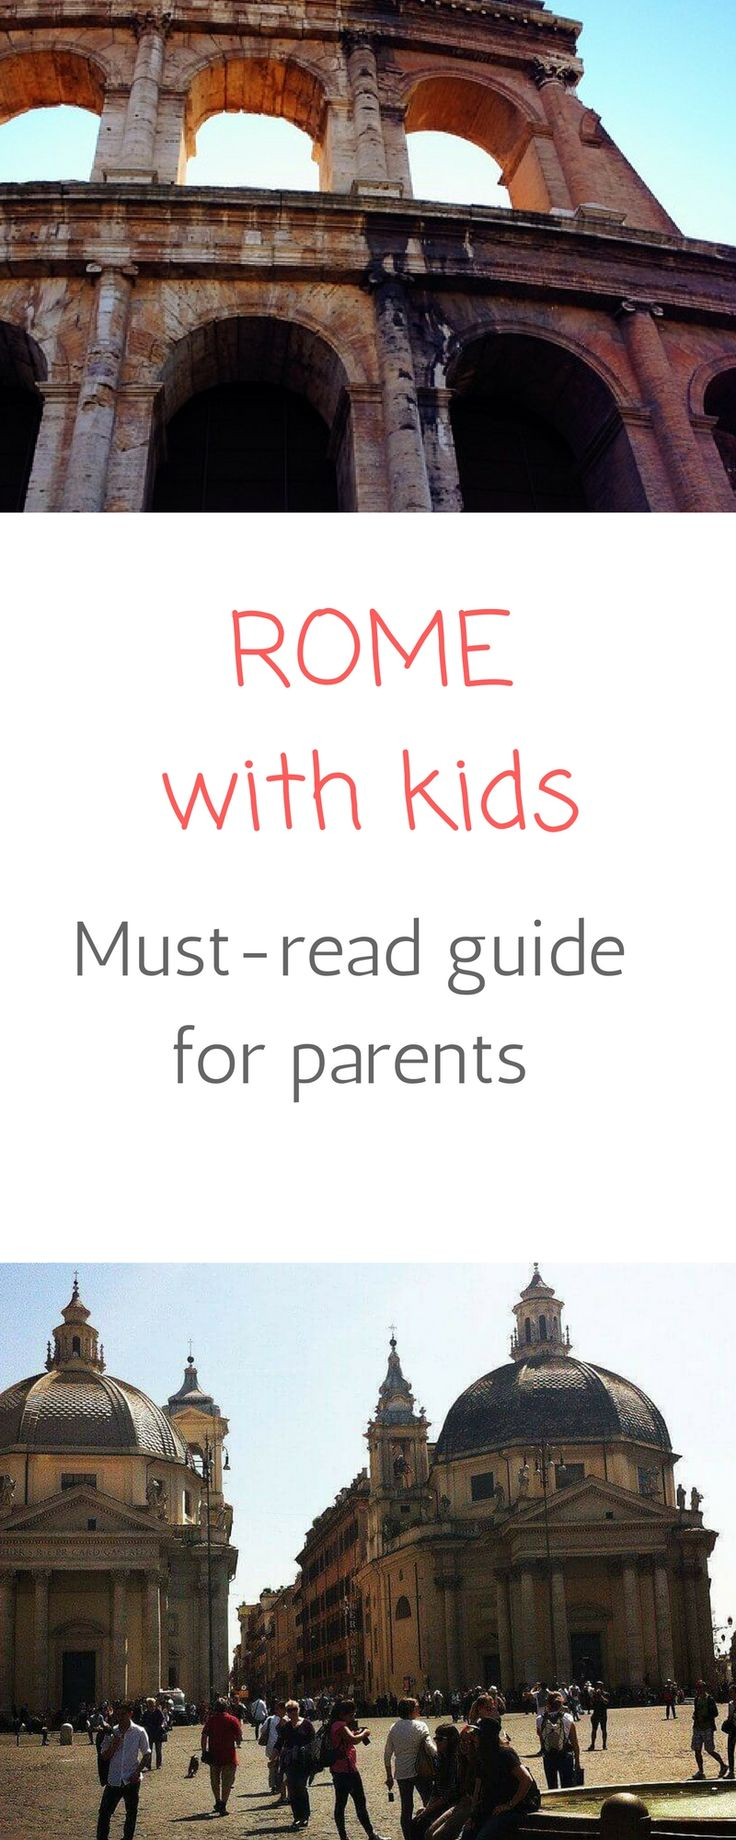 Your ultimate guide to visiting Rome with kids with insider's tips from a local mum. What to do in Rome with kids, child-friendly museums in Rome, top attractions for kids in Rome, where to stay in Rome with kids and much more.